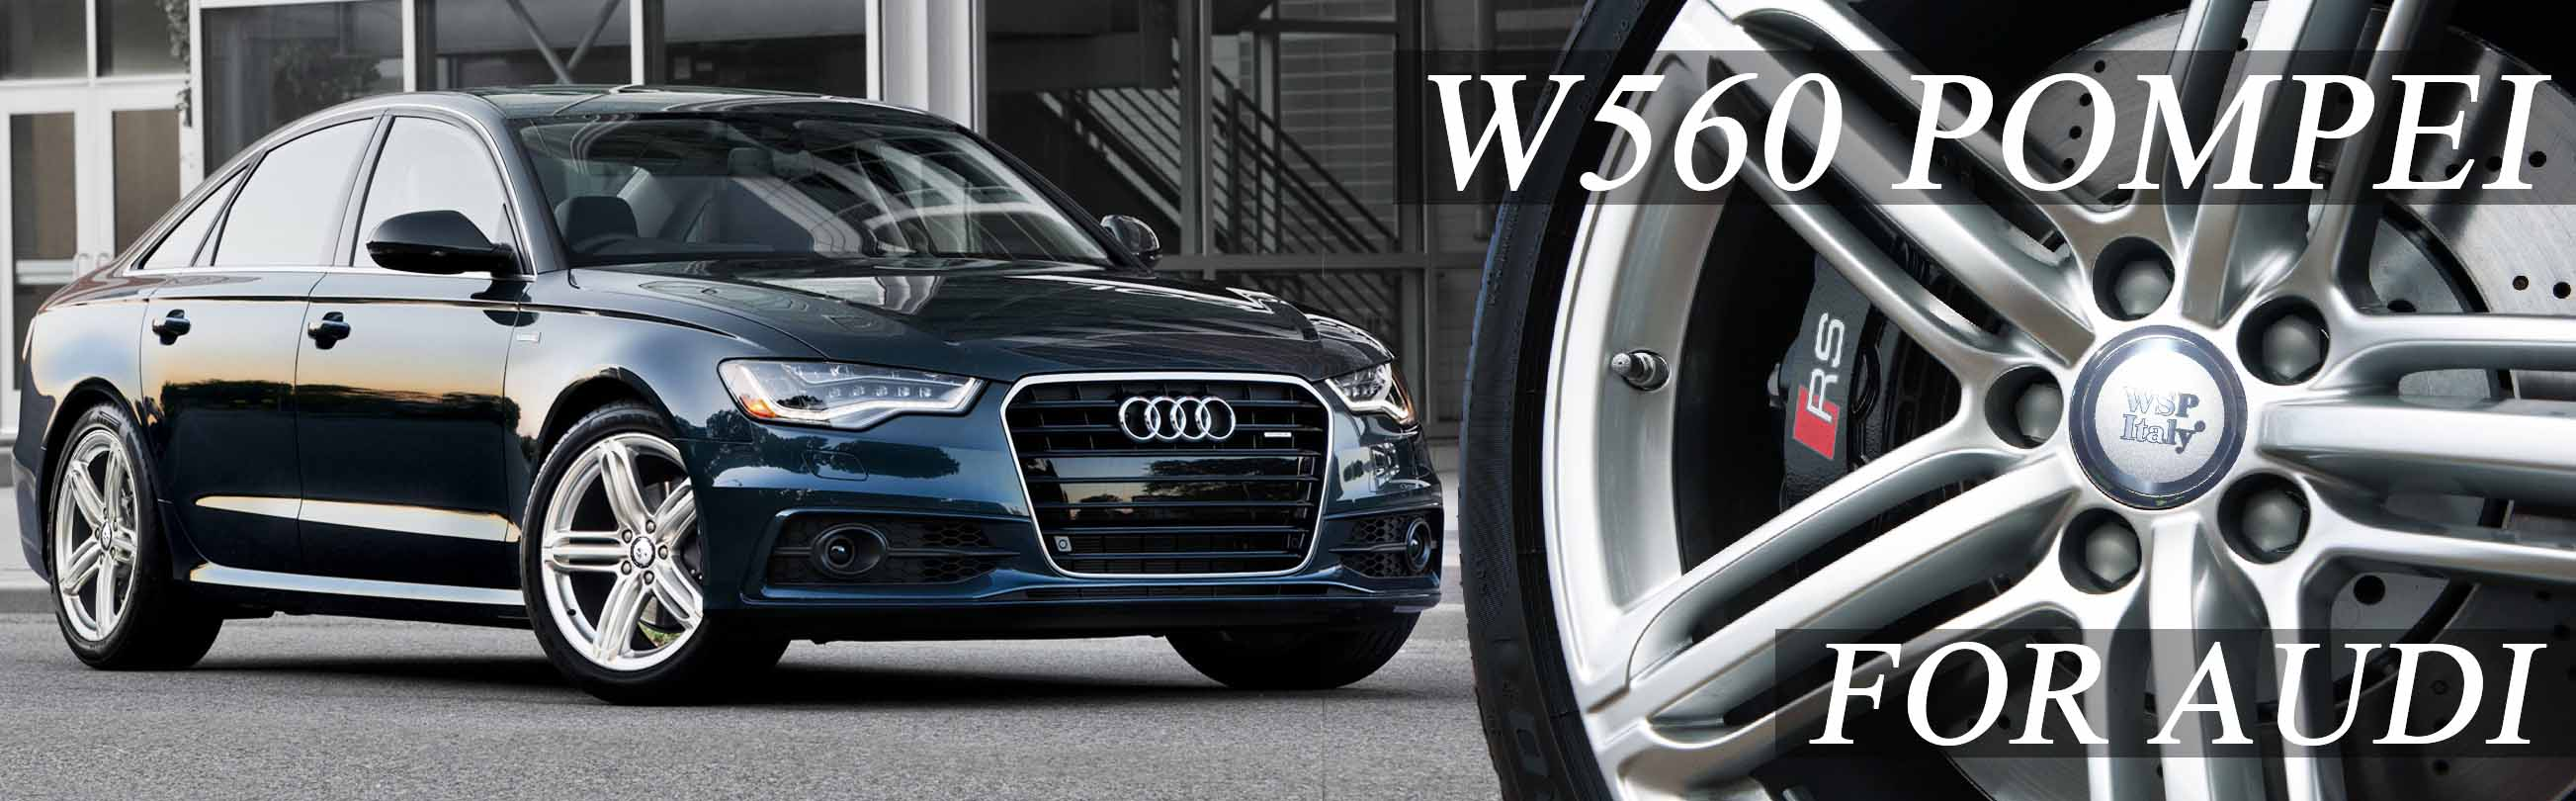 560_2013-audi-a6-wspitaly_diski_wheels